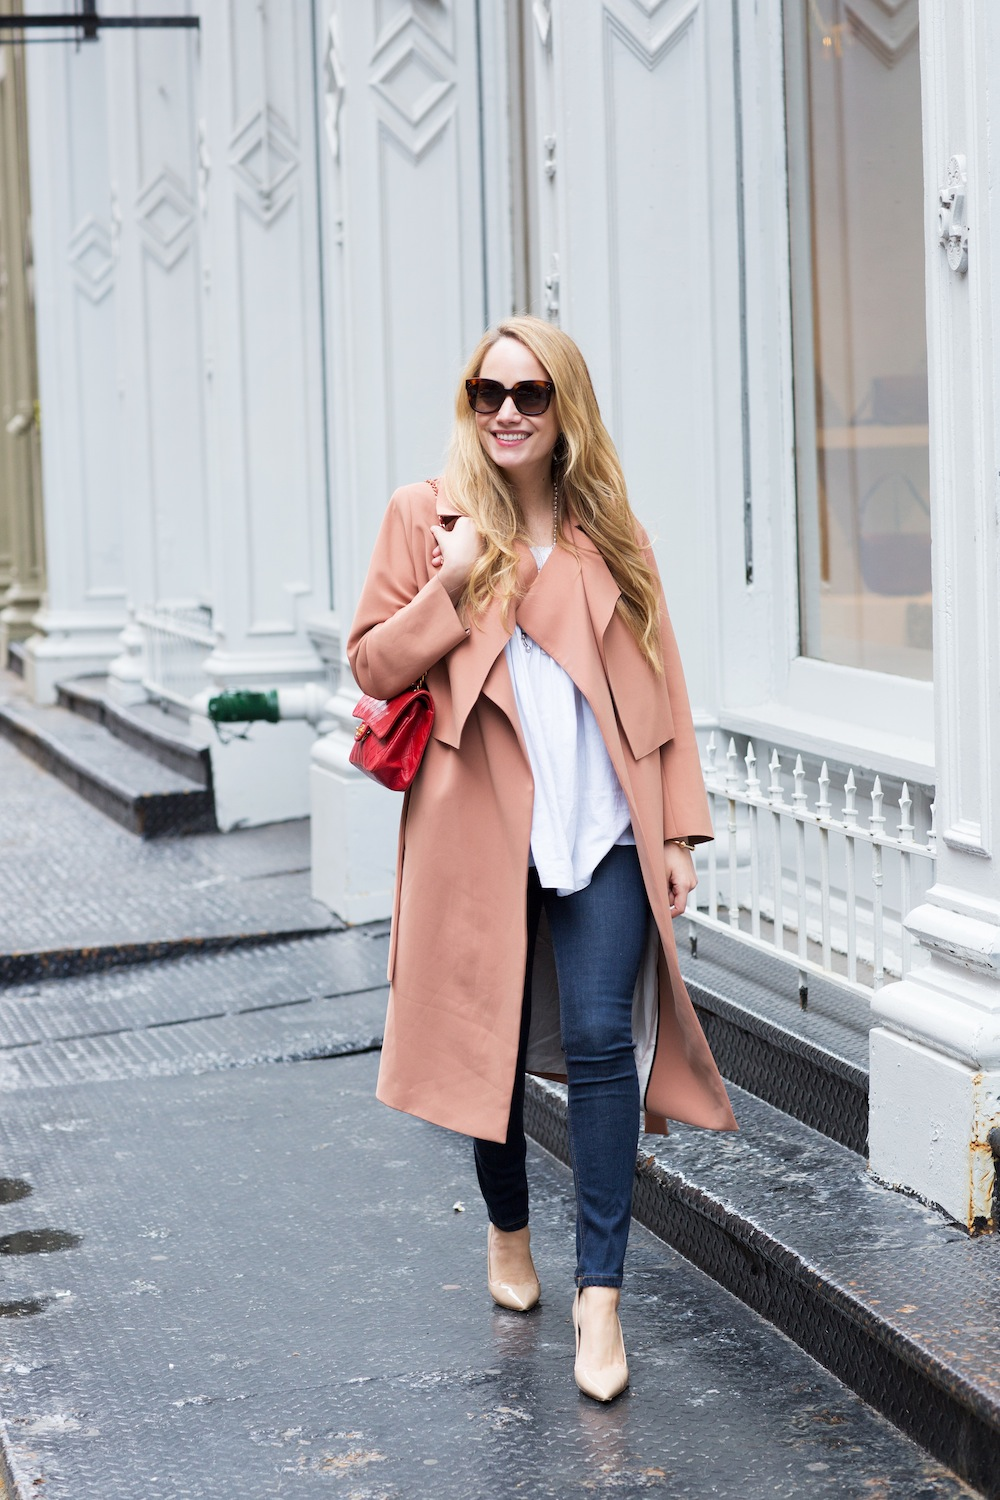 Spring Classics: by Malene Birger Trench, Mi Golondrina Top, Red Chanel Bag